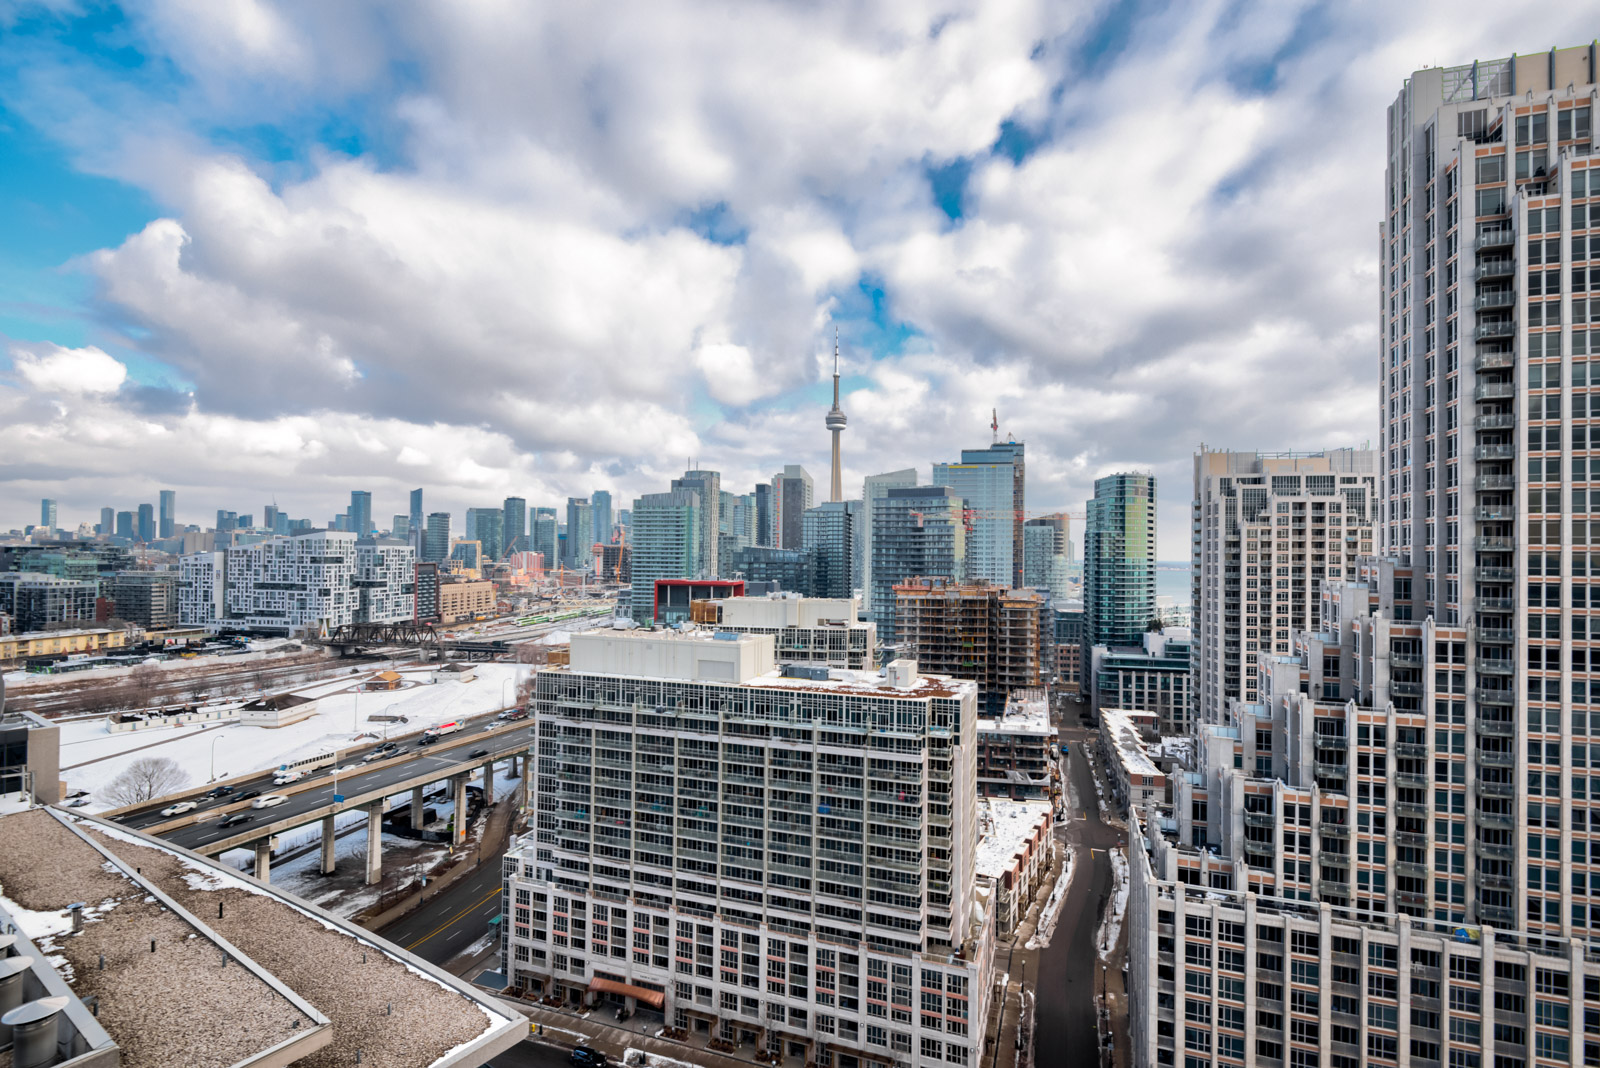 Pre-Buying Tip 4 is about location with picture showing Toronto skyline during day.